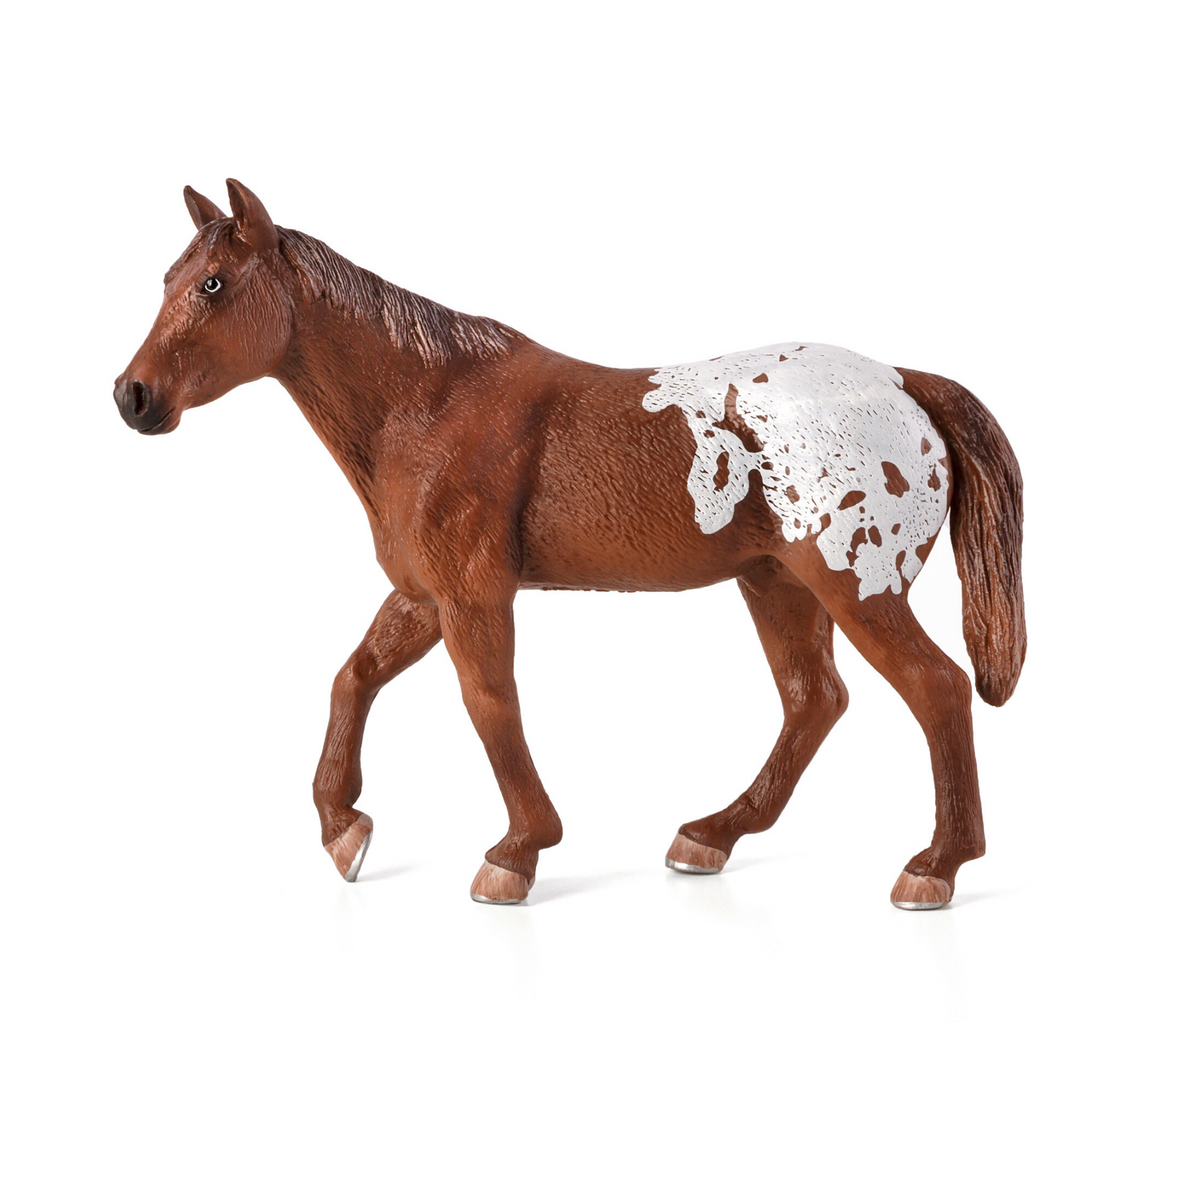 Chestnut Appaloosa Stallion Animal Planet 387150